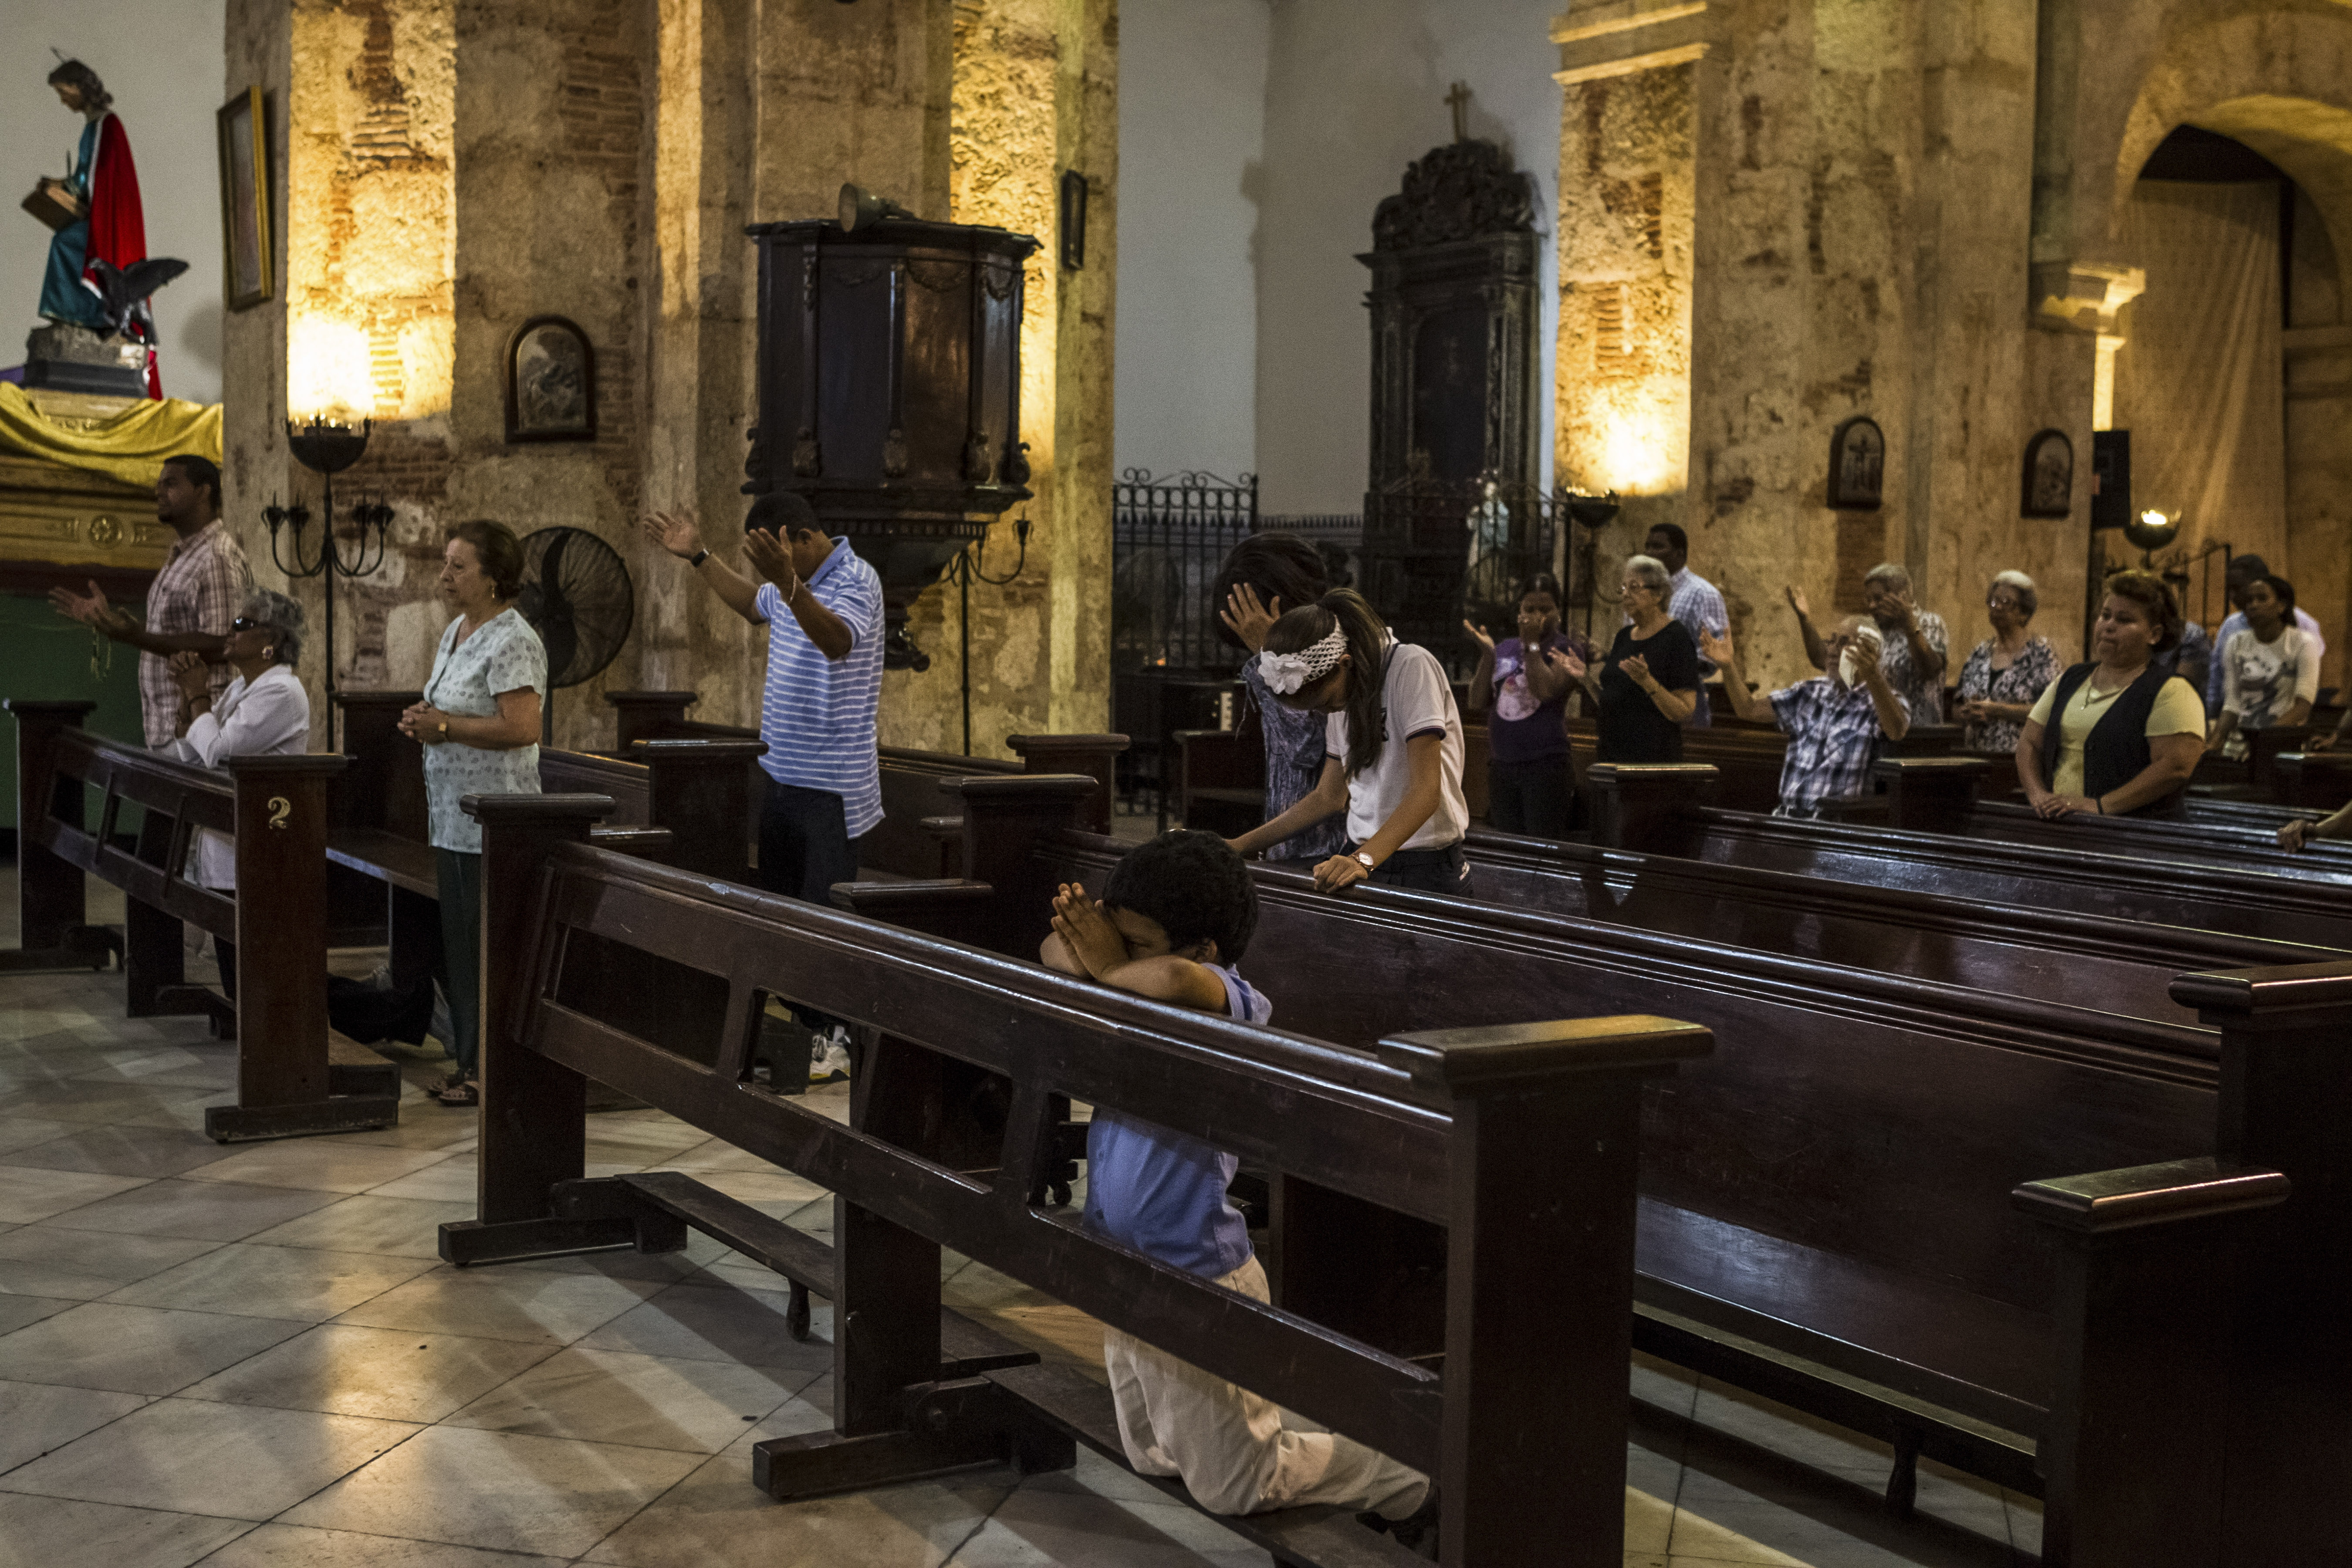 Parishoners attend a service at a church in the historic district of Santo Domingo, Dominican Republic. Josef Wesolowski, the Vatican's former top ambassador to the Dominican Republic, has been defrocked after becoming the first nuncio to be accused of sexually abusing minors.